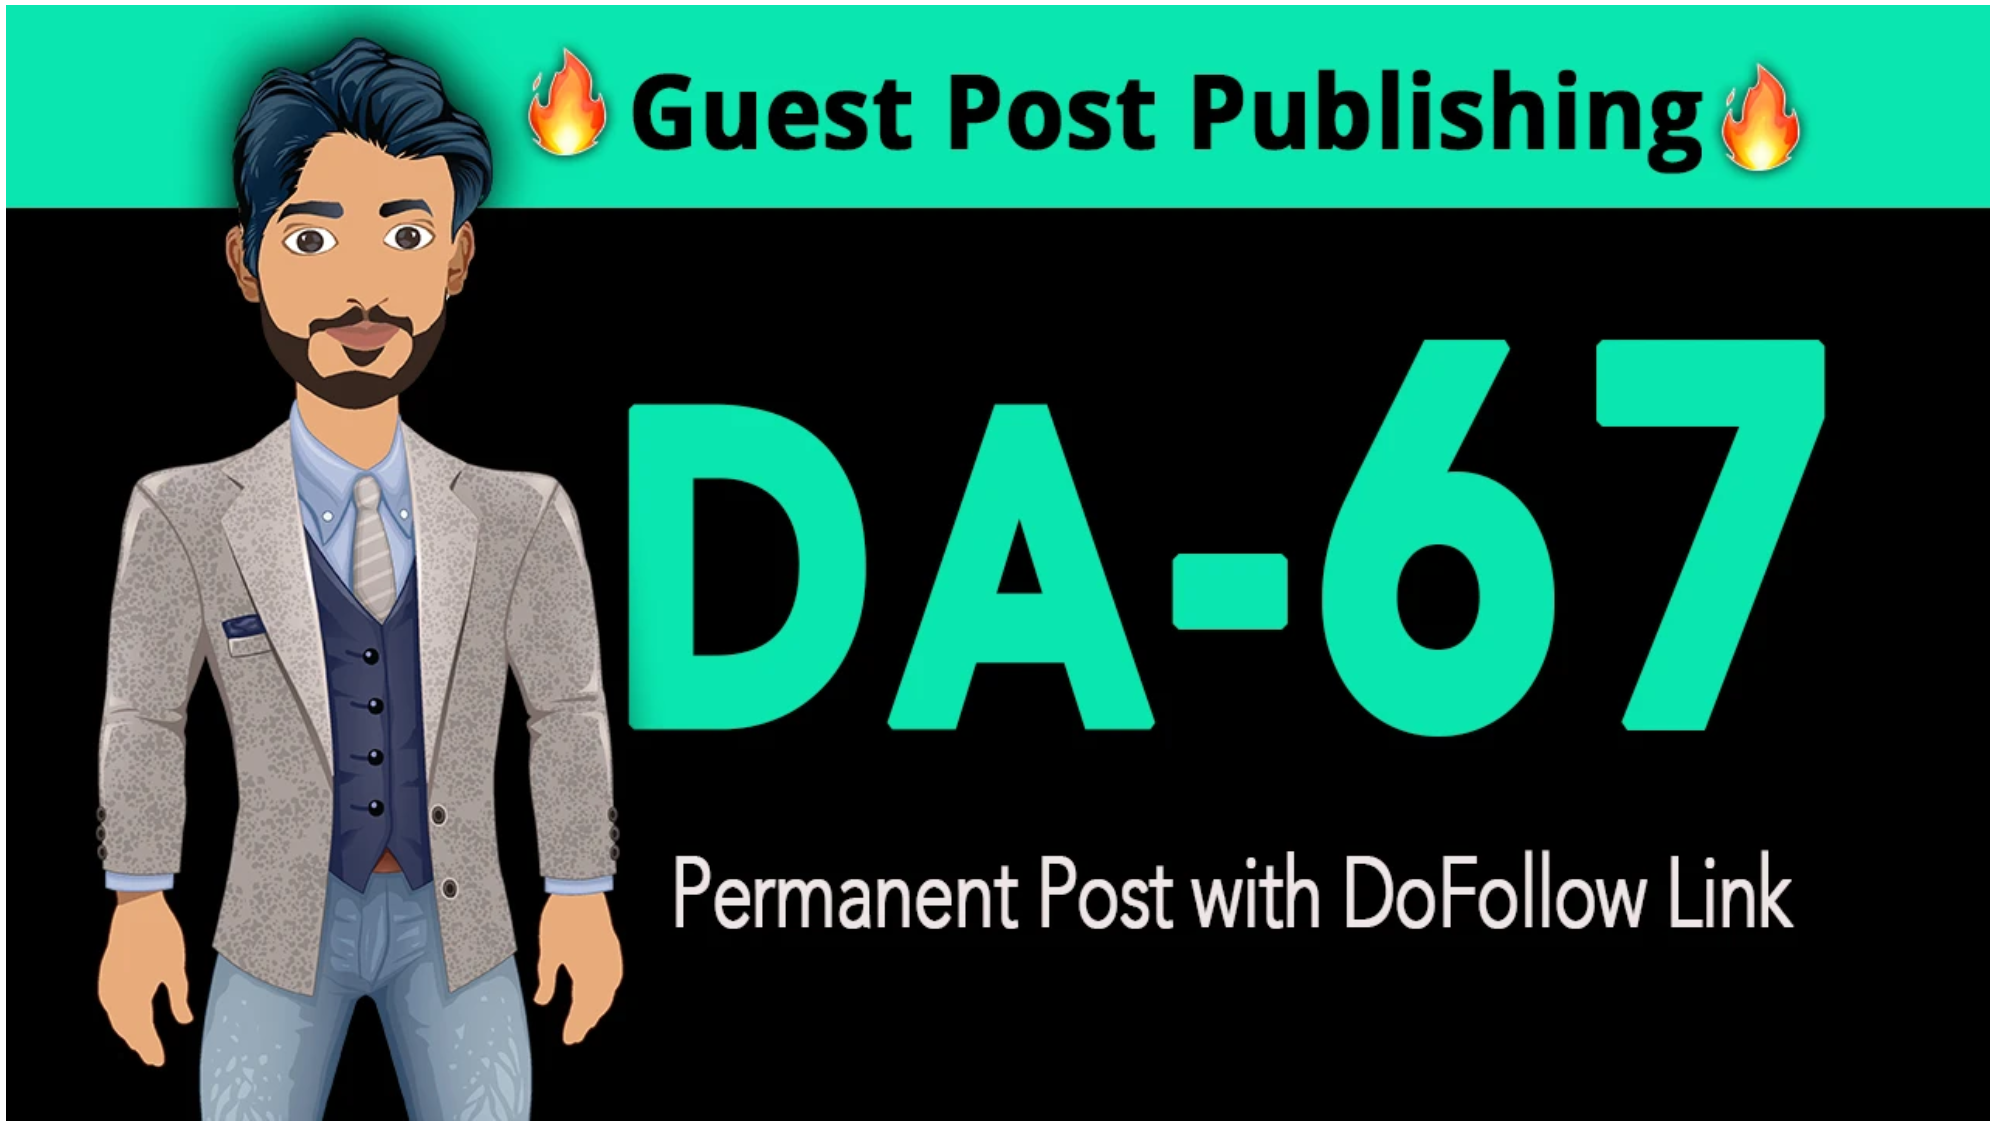 guest post on da 67 blog within 24 hours